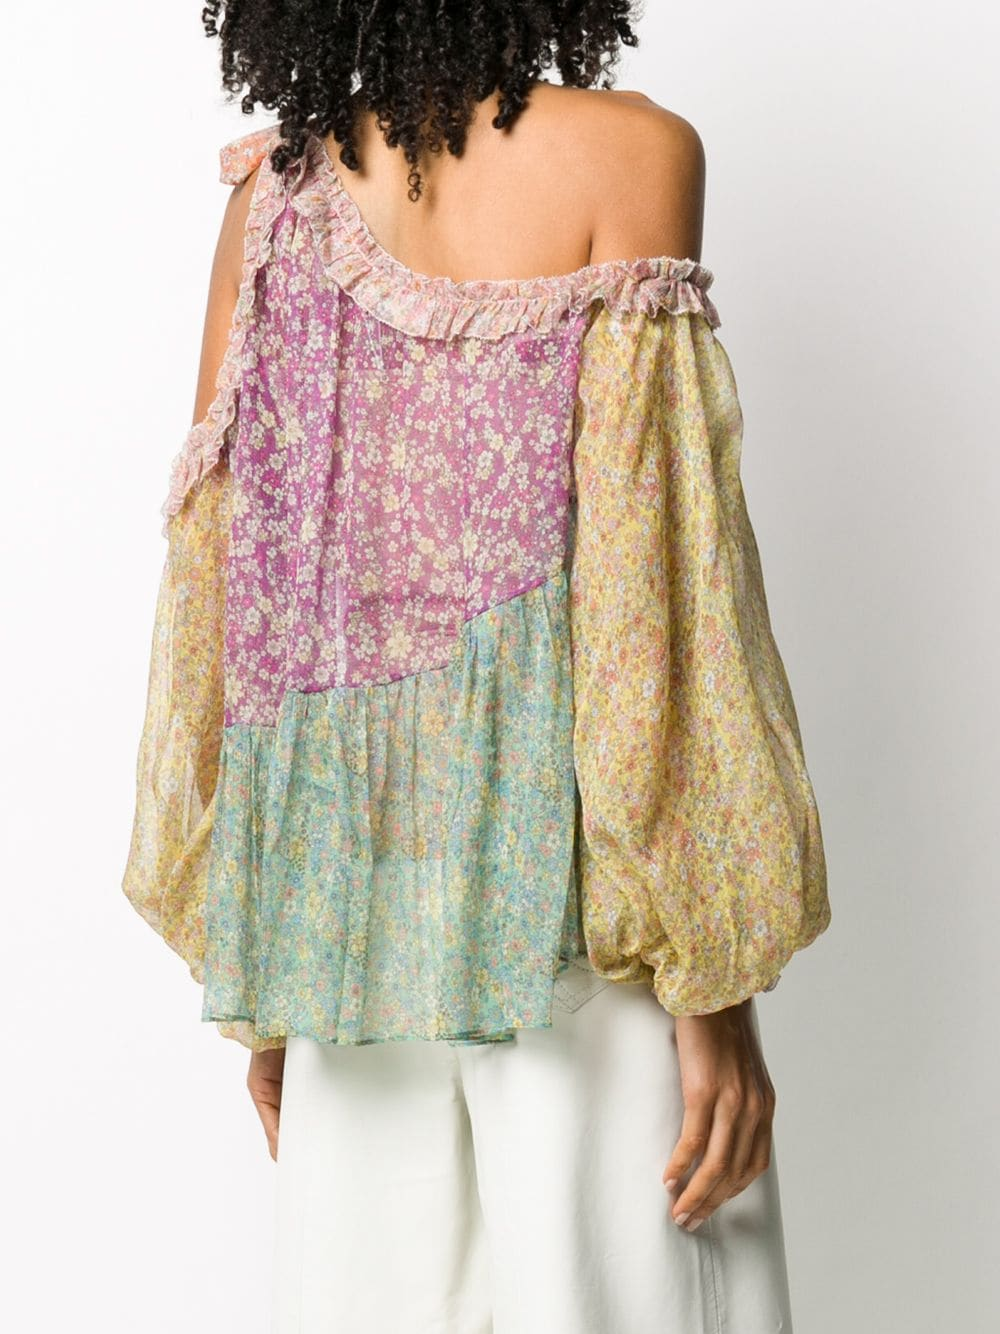 Picture of Zimmermann | Carnaby Frill Swing Top